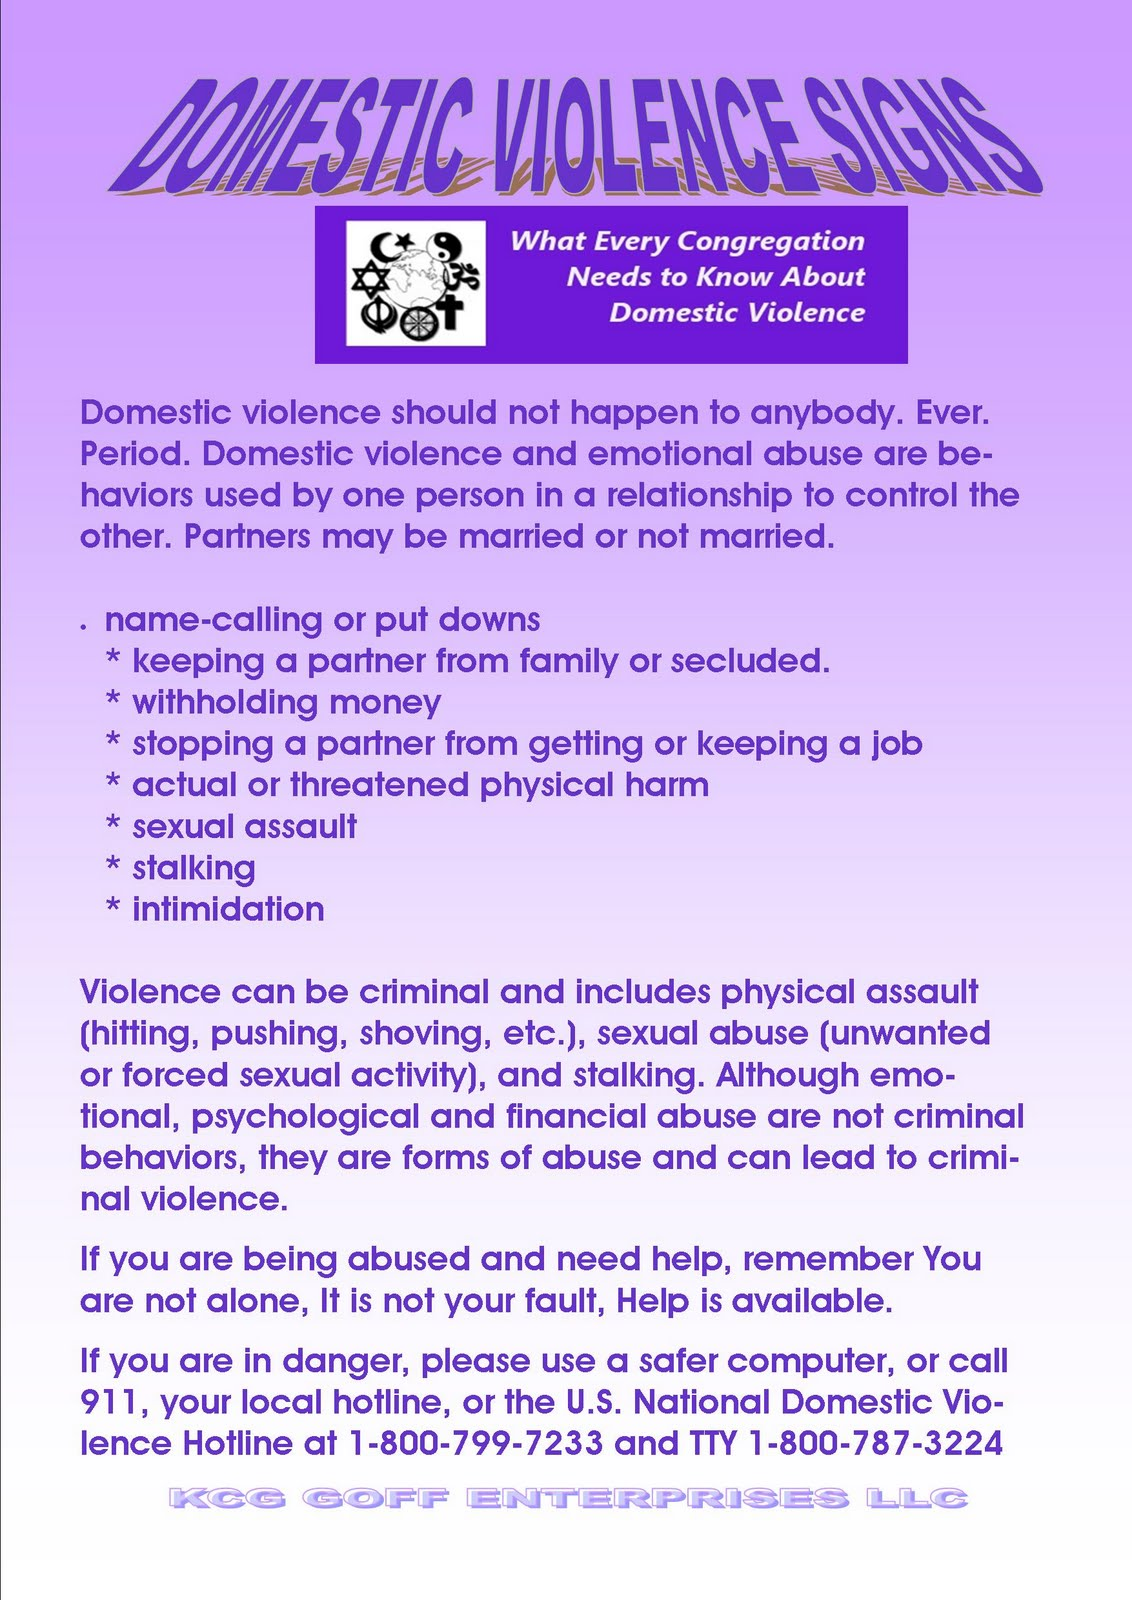 WellScript, LLC: October is Domestic Violence Awareness Month